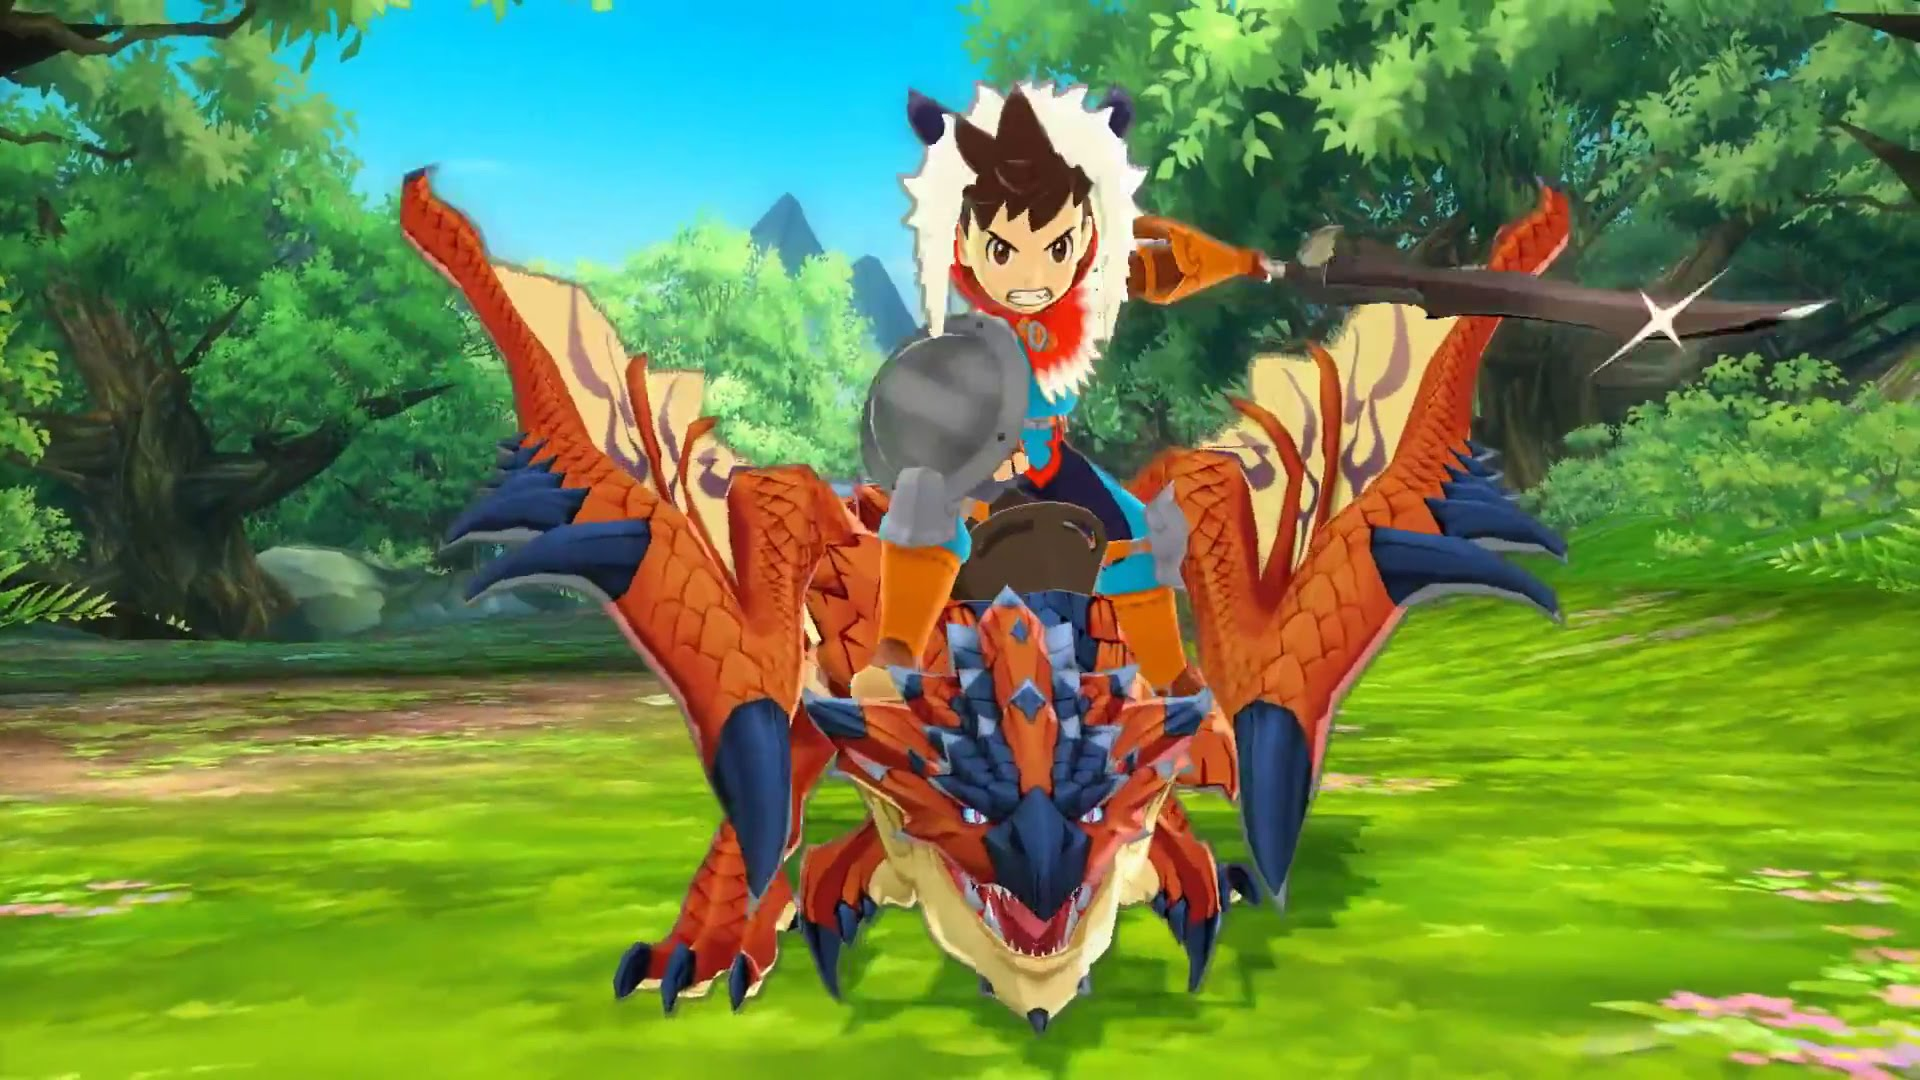 Nice wallpapers Monster Hunter Stories 1920x1080px